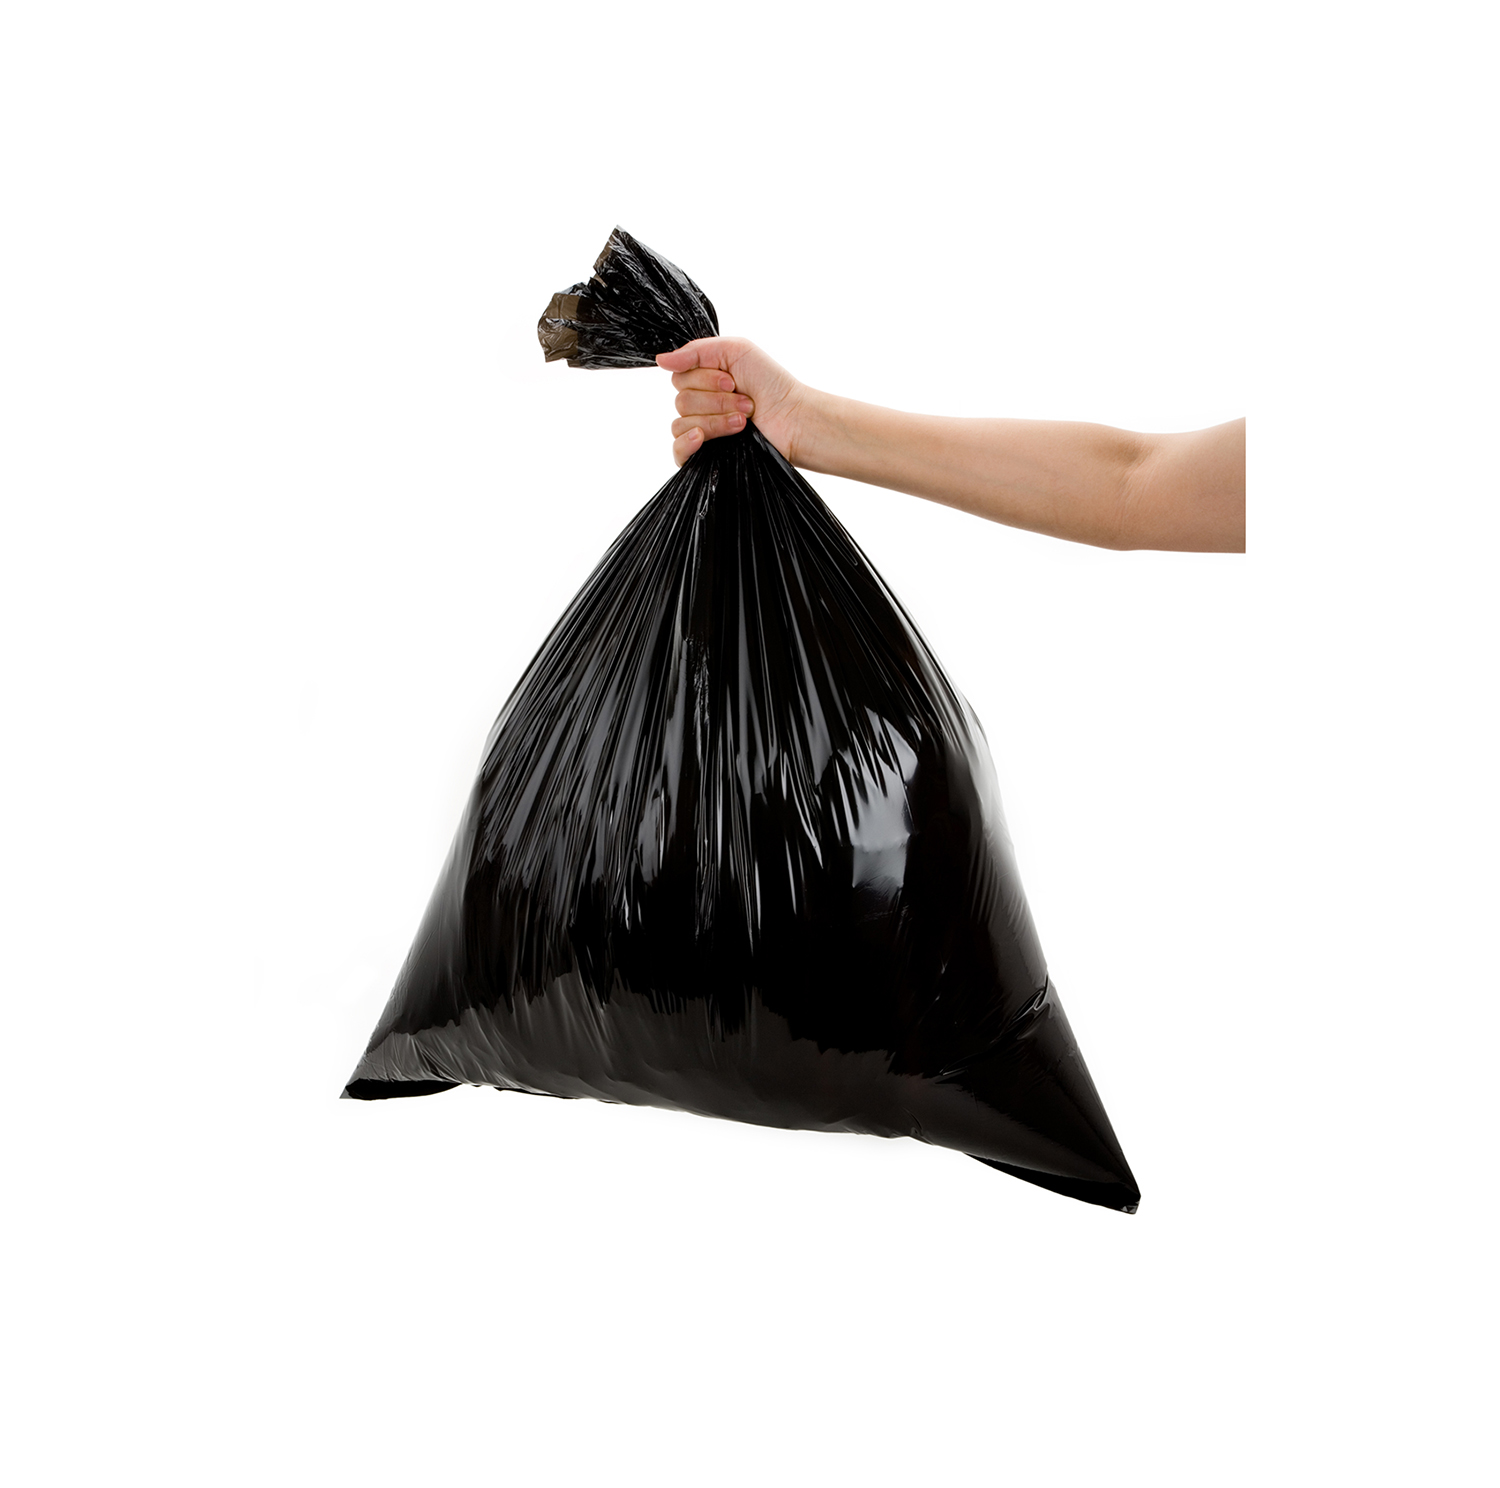 hand-holding-trash-bag